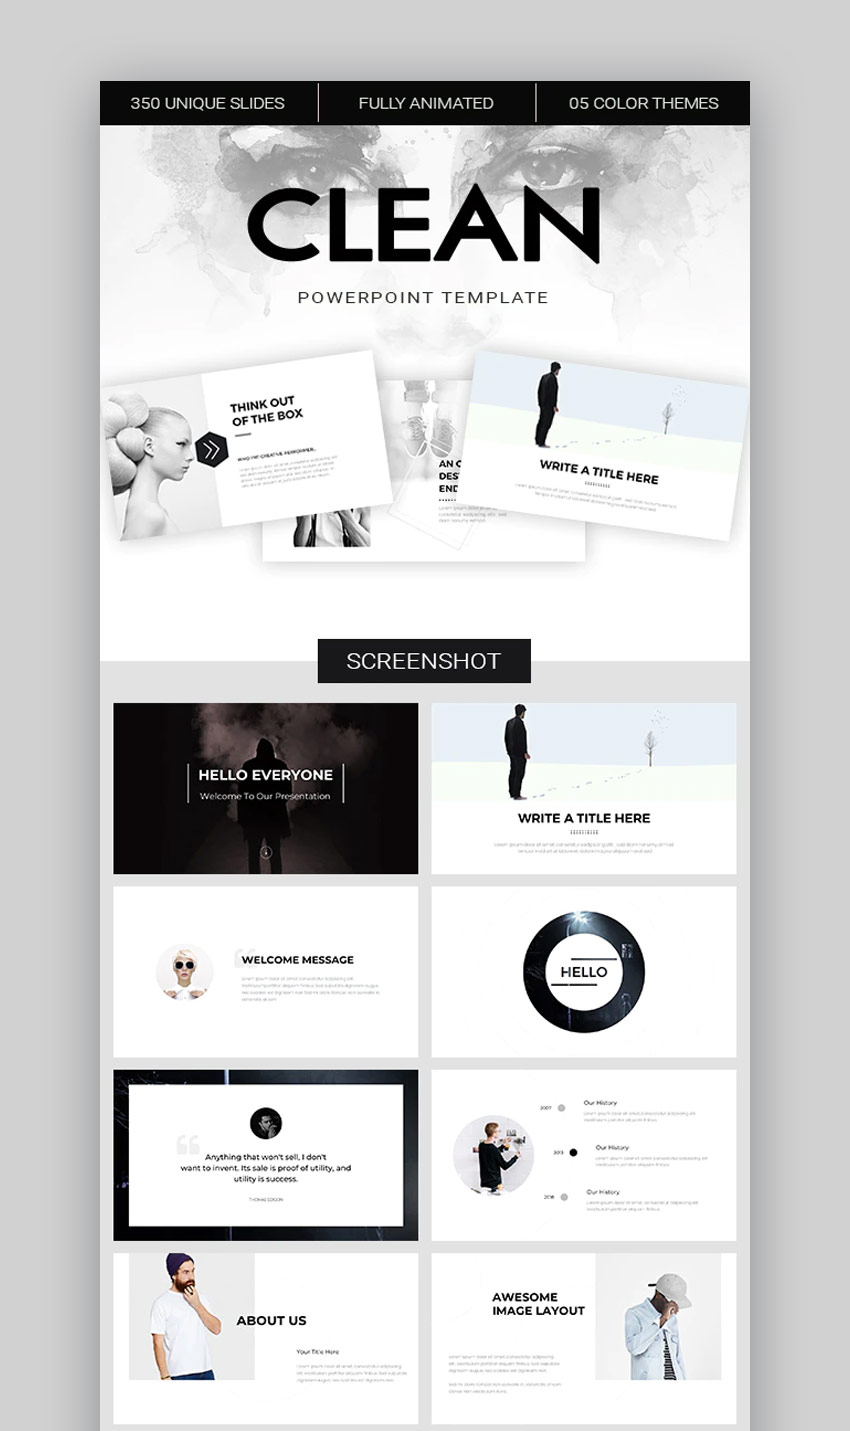 Clean PowerPoint design template